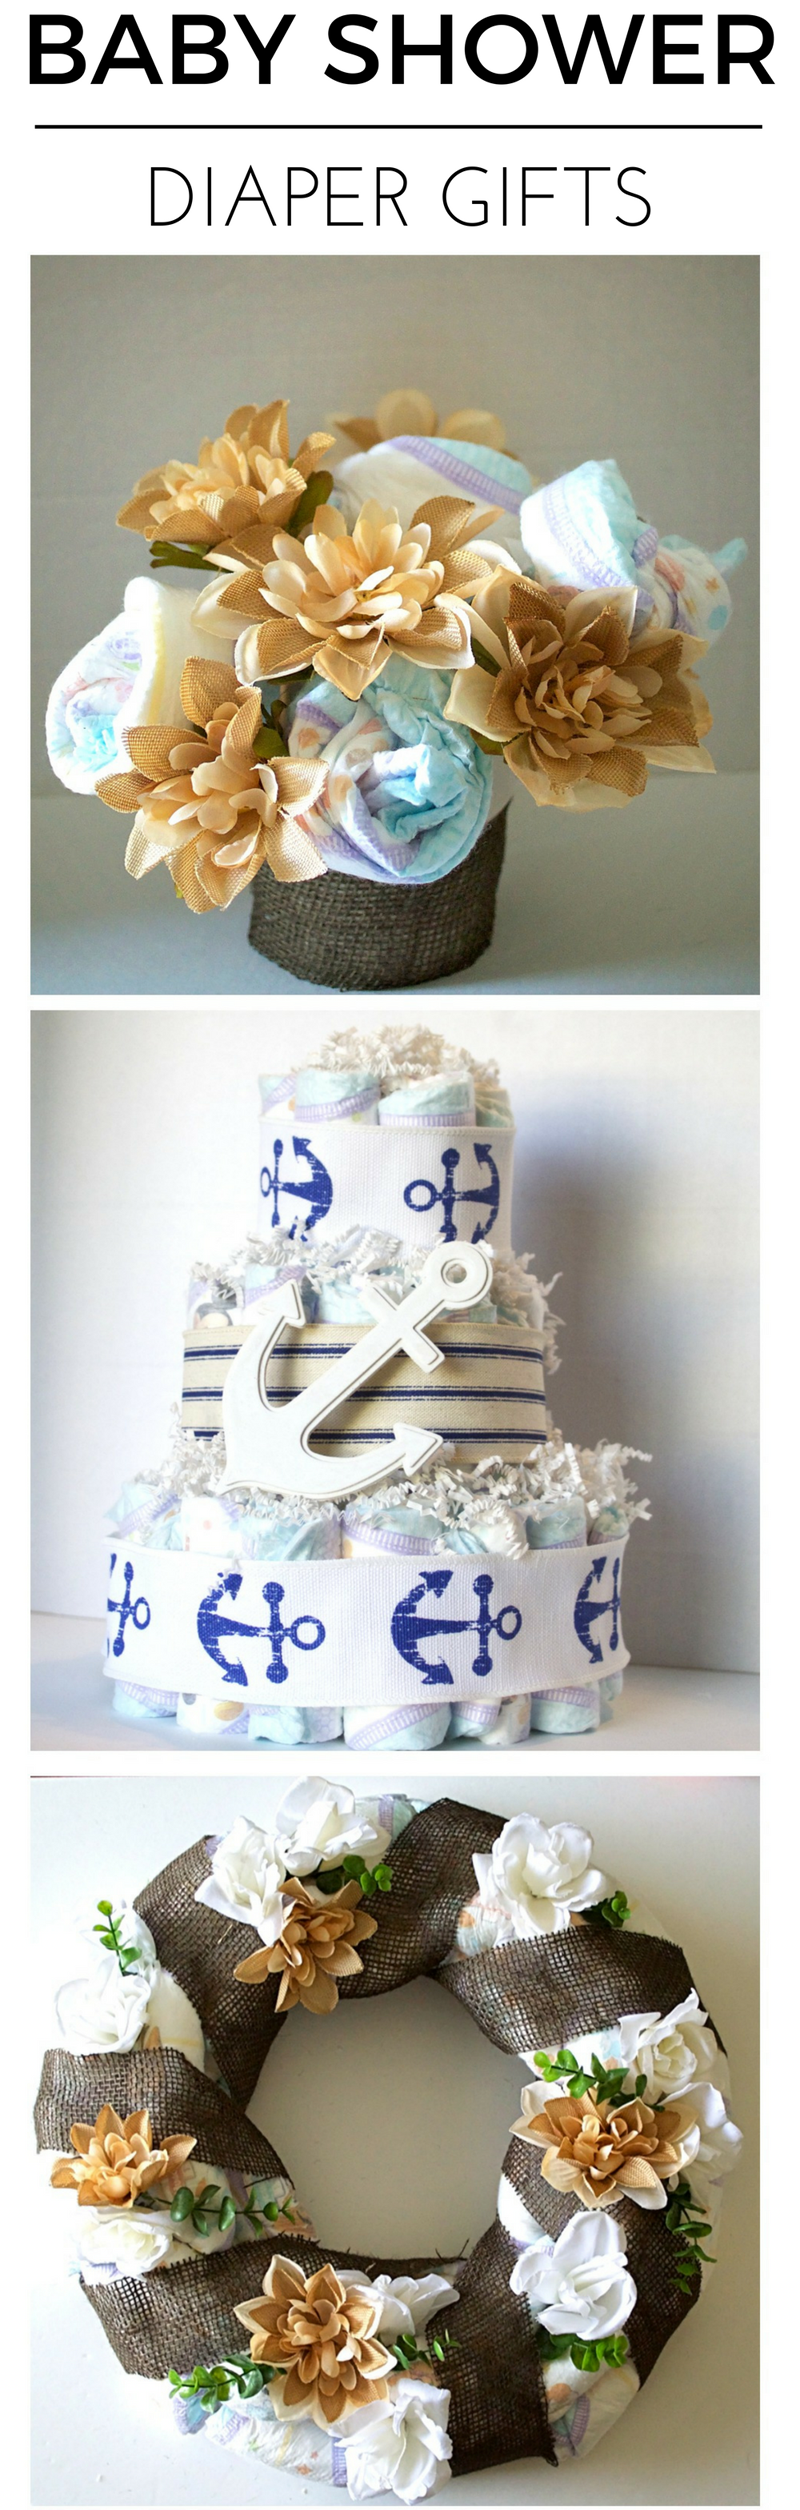 DIY Diaper baby shower gifts. #SuperAbsorbent #CollectiveBias #ad | Creative Things to Make With Diapers by popular Utah lifestyle blogger, Kara Metta: collage image of a diaper bouquet, diaper cake, and diaper wreath.